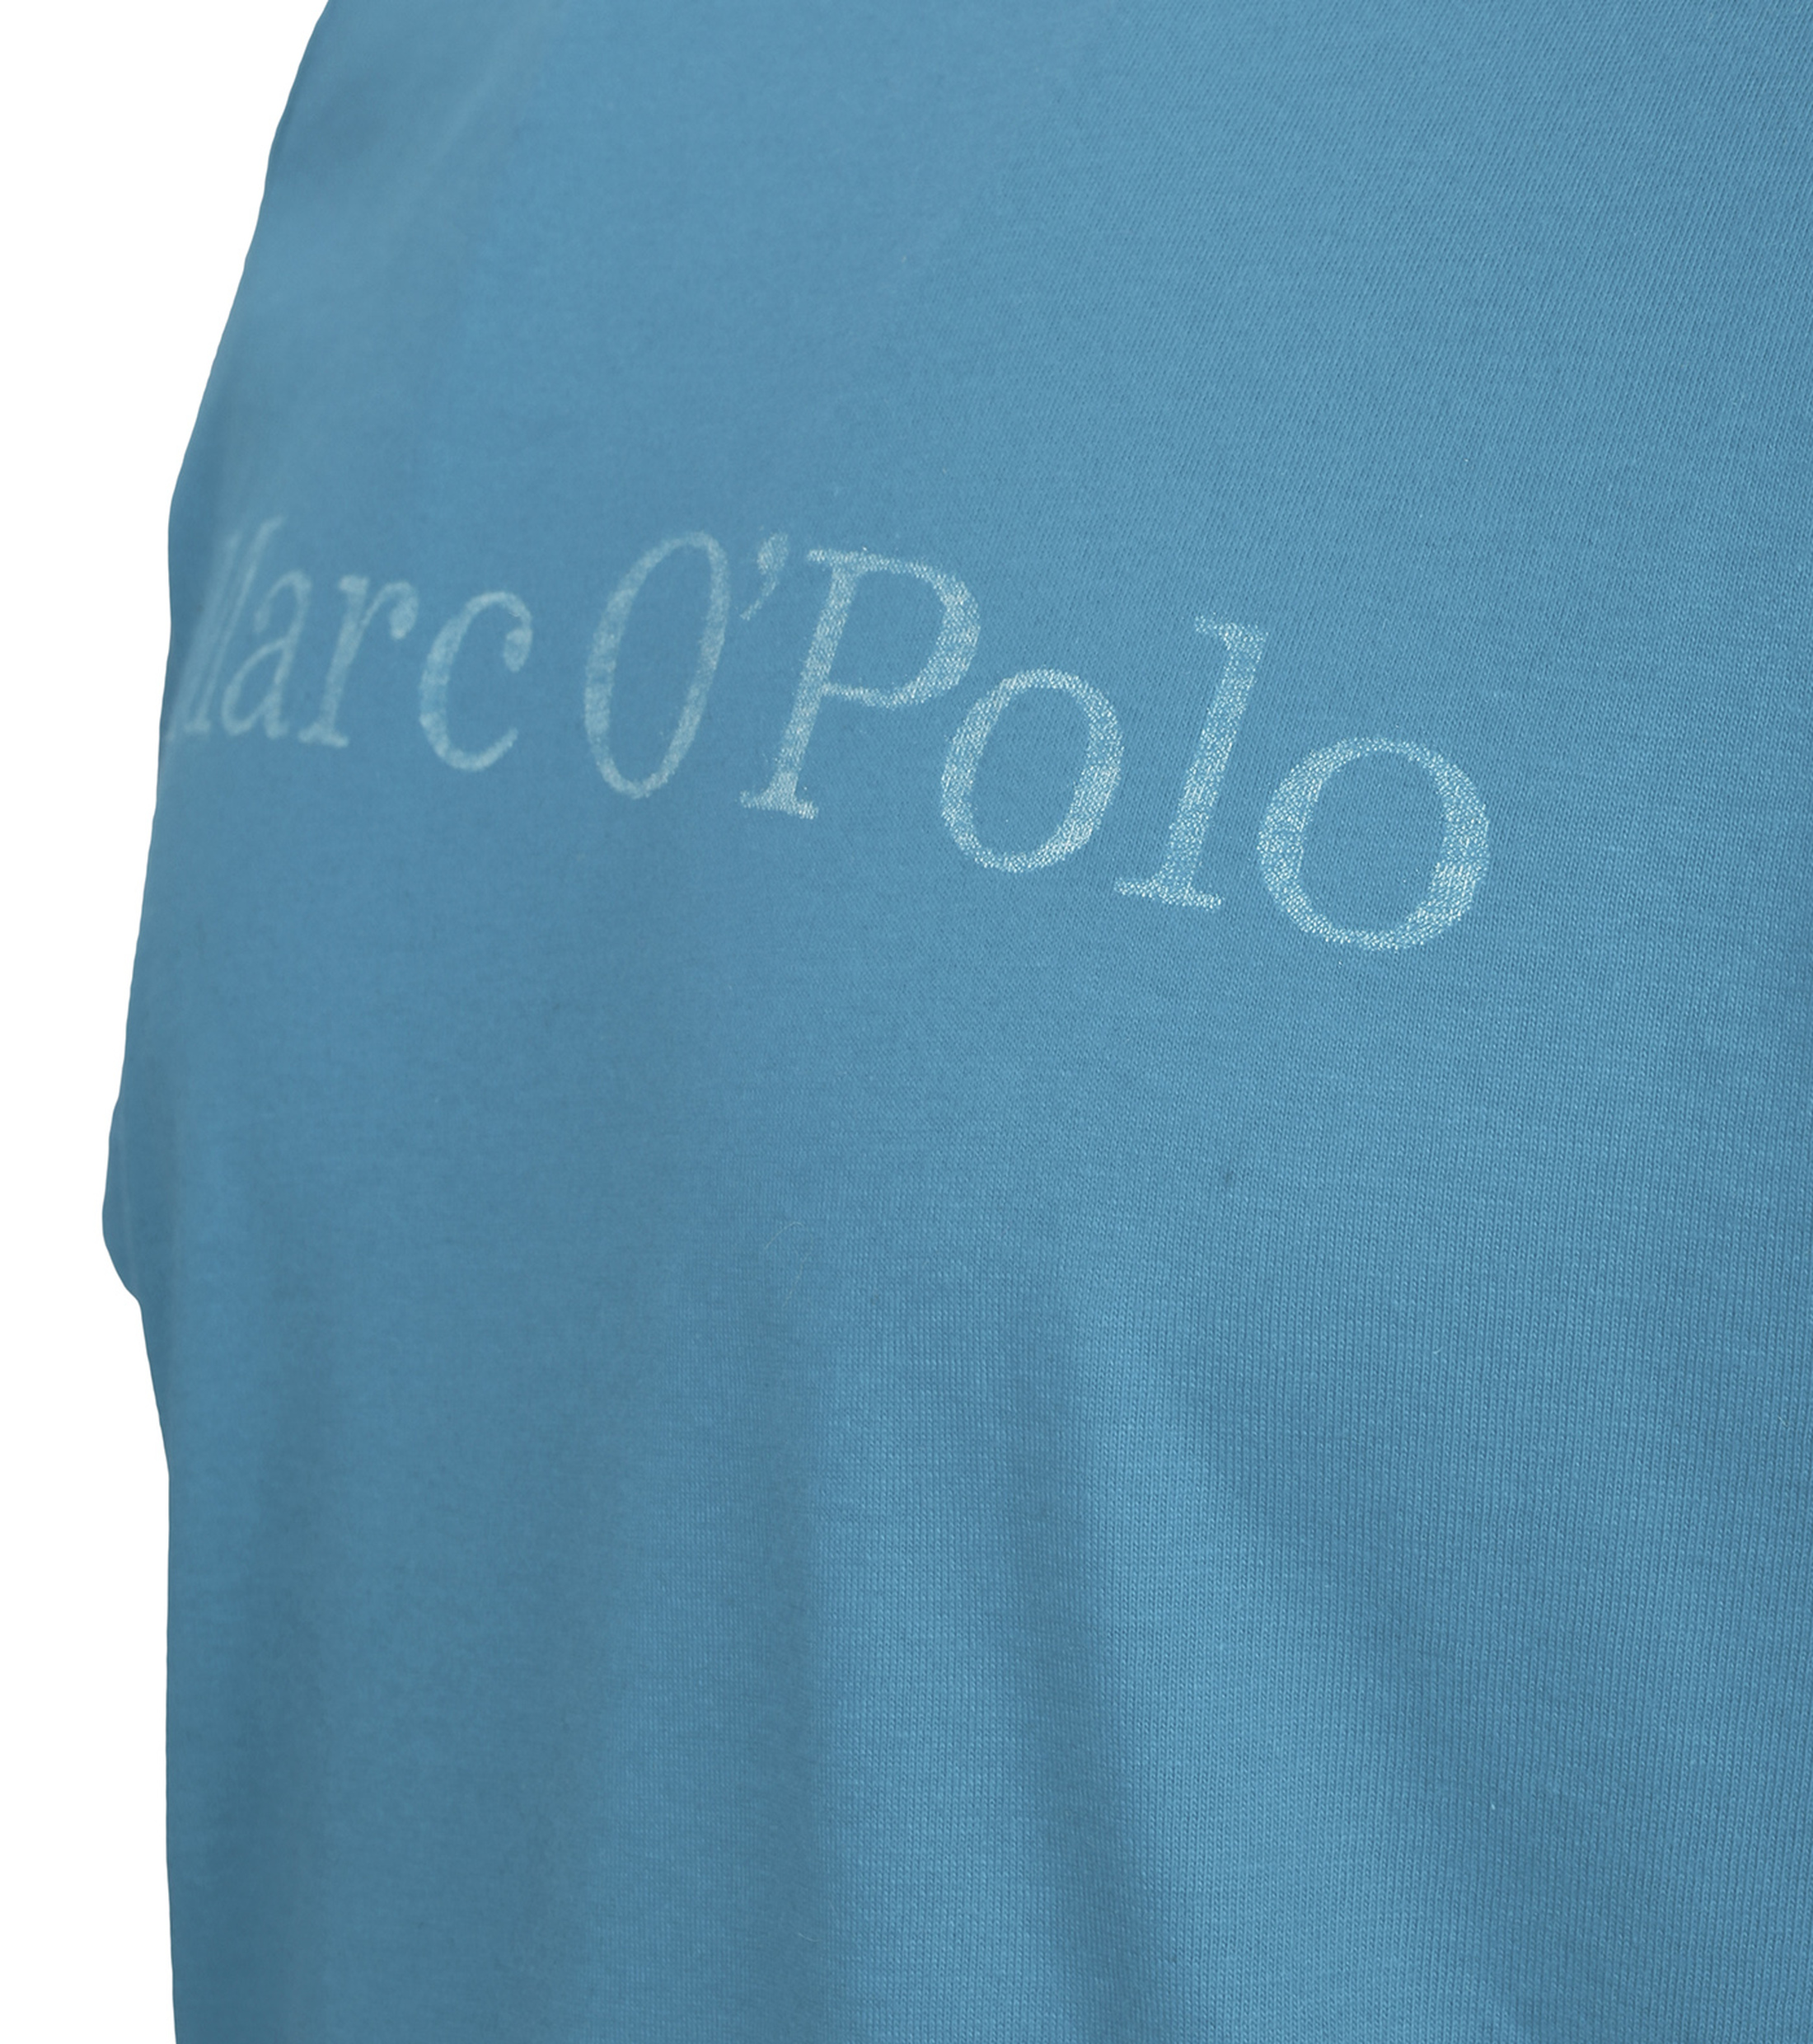 Marc O'Polo T-shirt Blauw foto 1